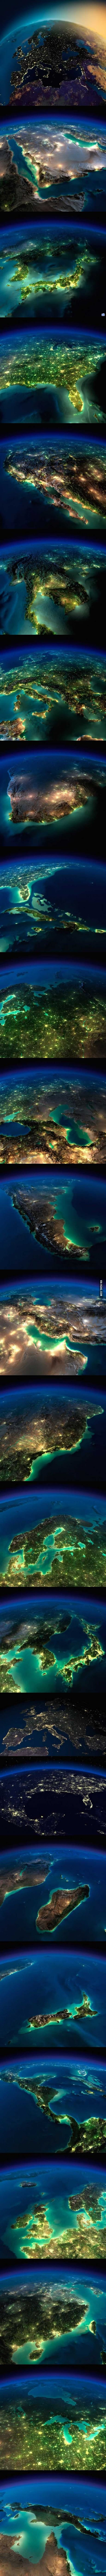 Earth at Night ◉ pinned by  http://www.waterfront-properties.com